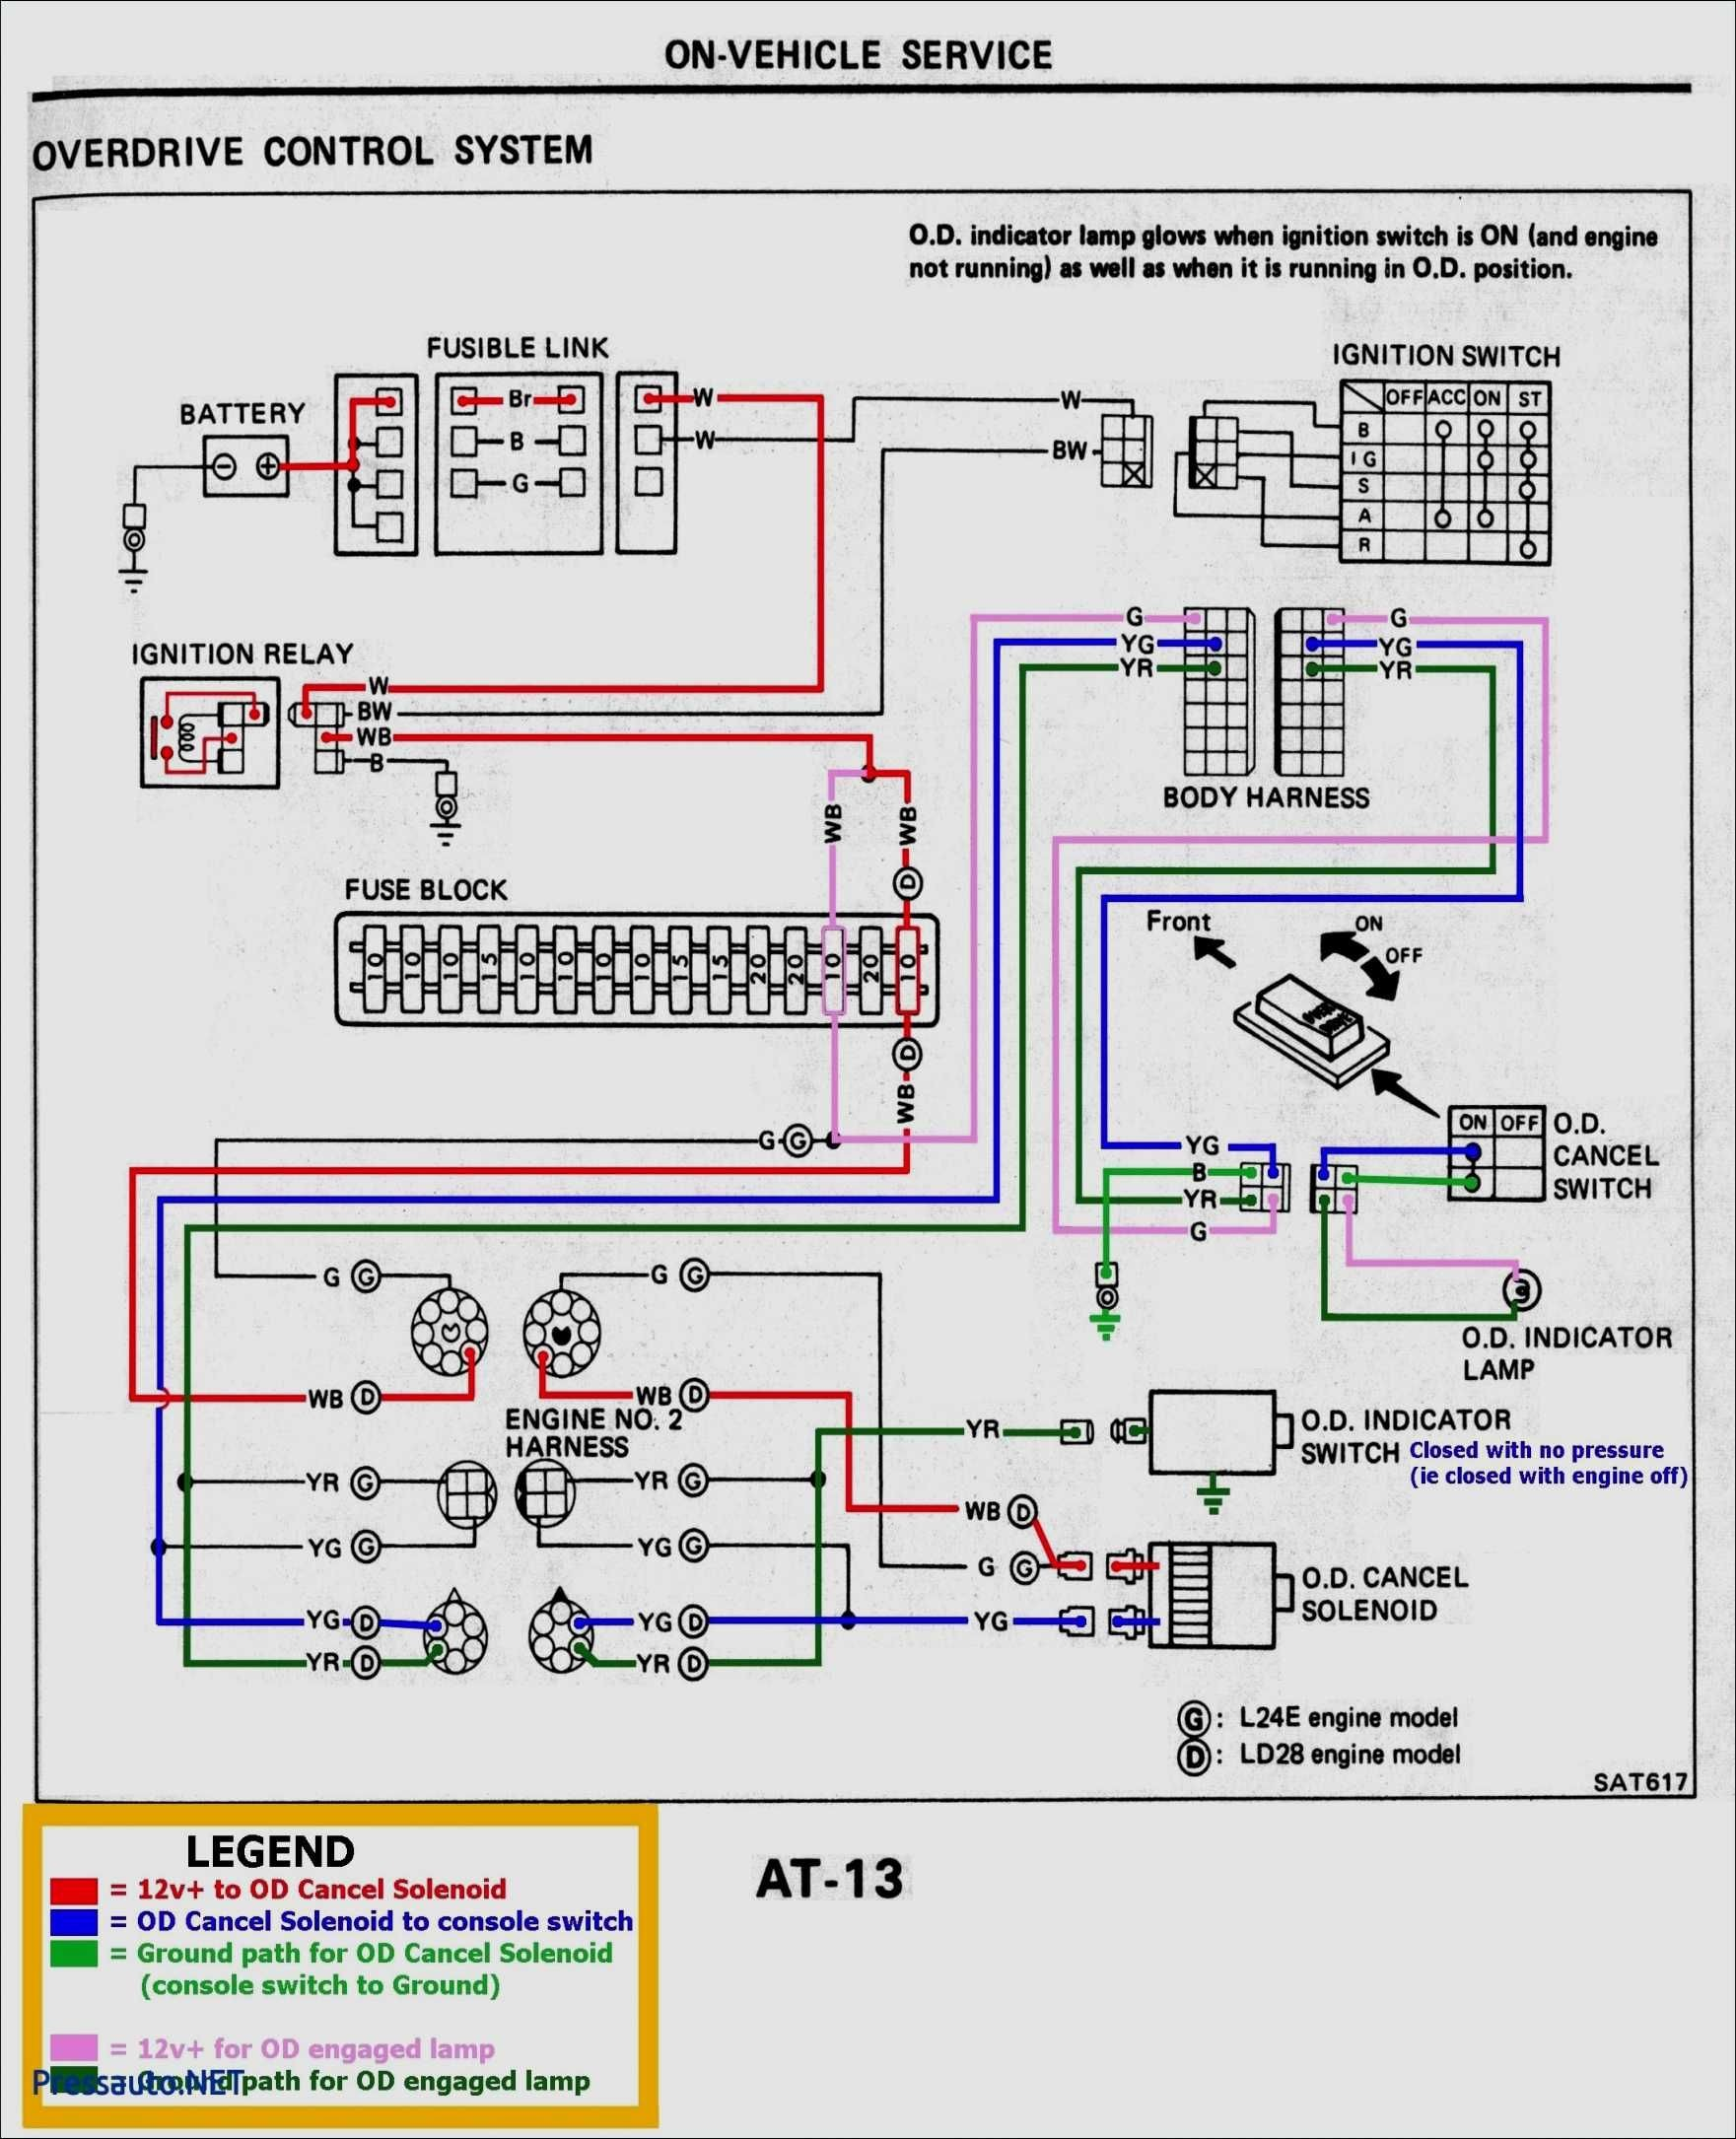 Pioneer Deck Wiring Harness Diagram from detoxicrecenze.com